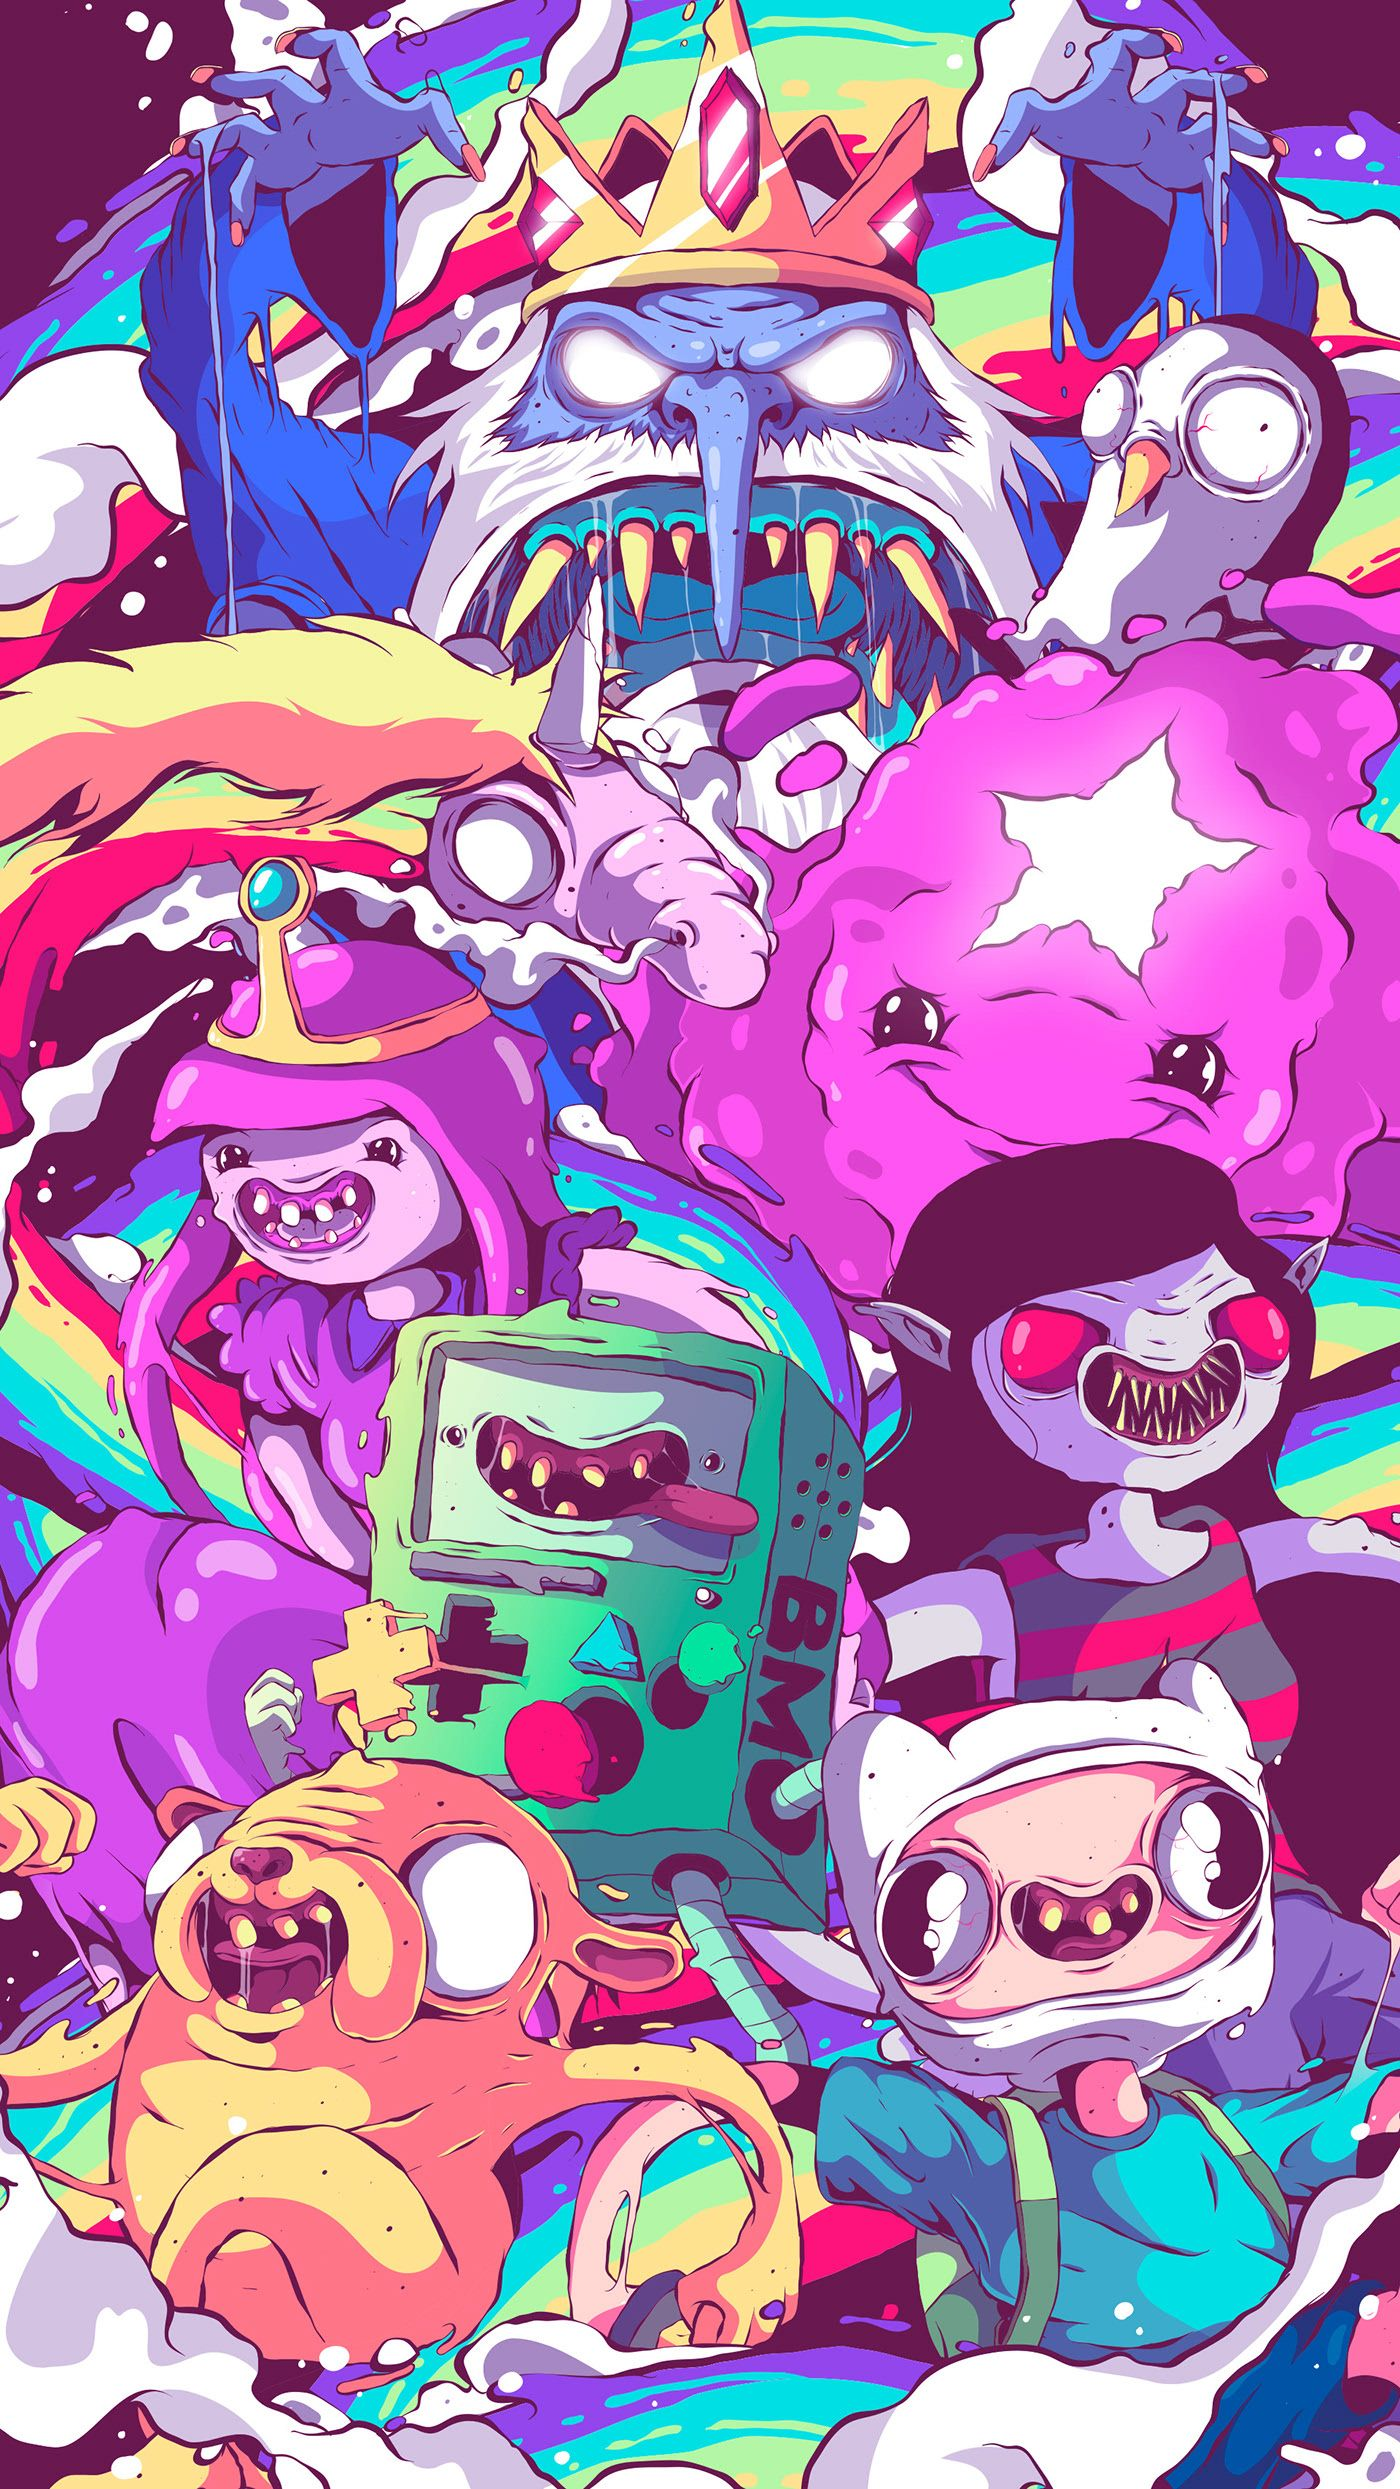 Adventure Time In The Liquid World On Behance Adventure Time Wallpaper Adventure Time Art Cartoon Wallpaper